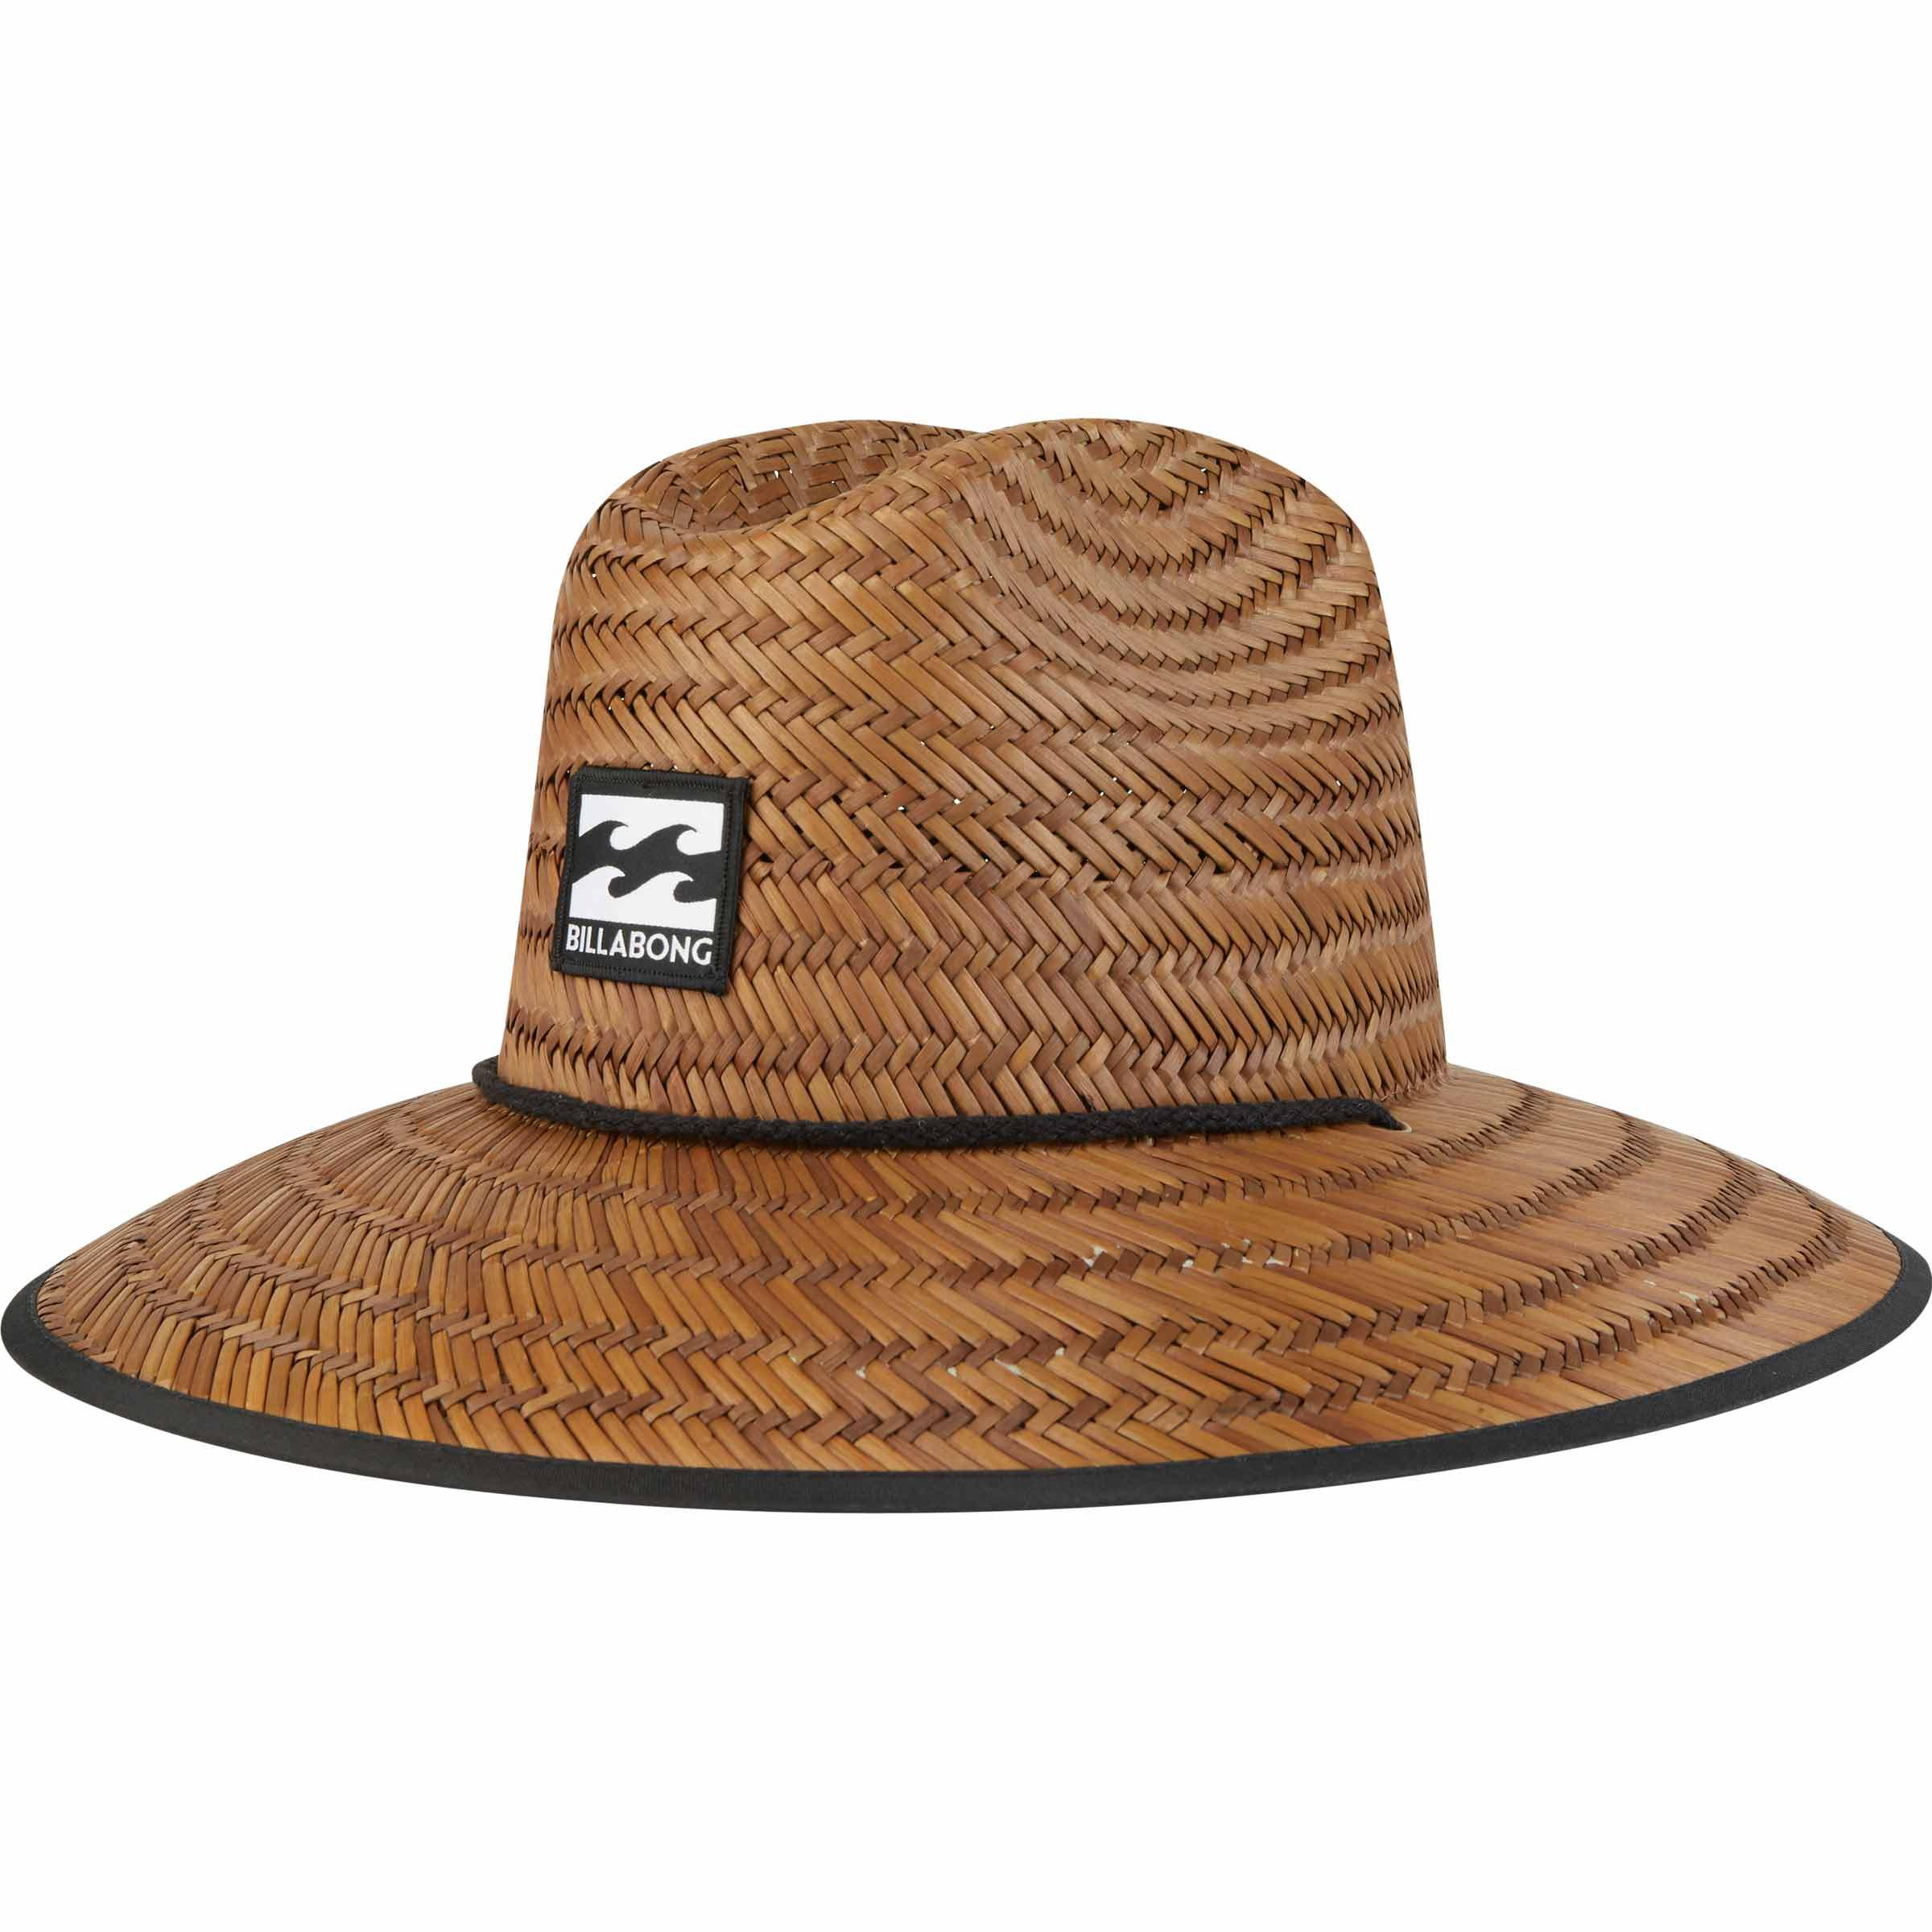 105495a78fa06 Billabong Tides Print Straw Hat for Men - Lyst